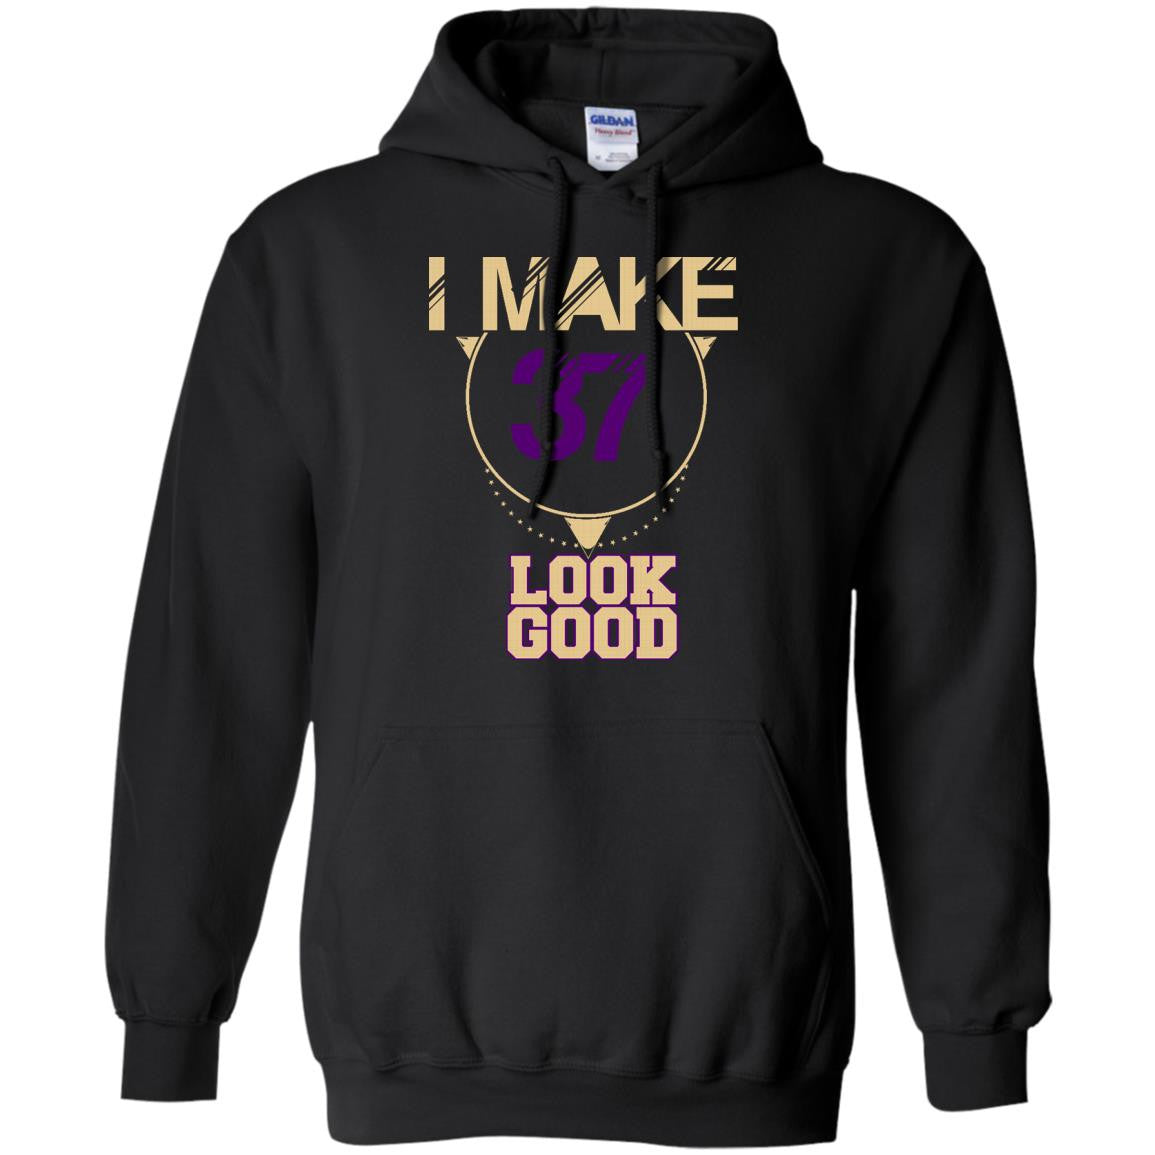 37 Years Old Shirts I Make 37 Look Good T-shirts Hoodies Sweatshirts